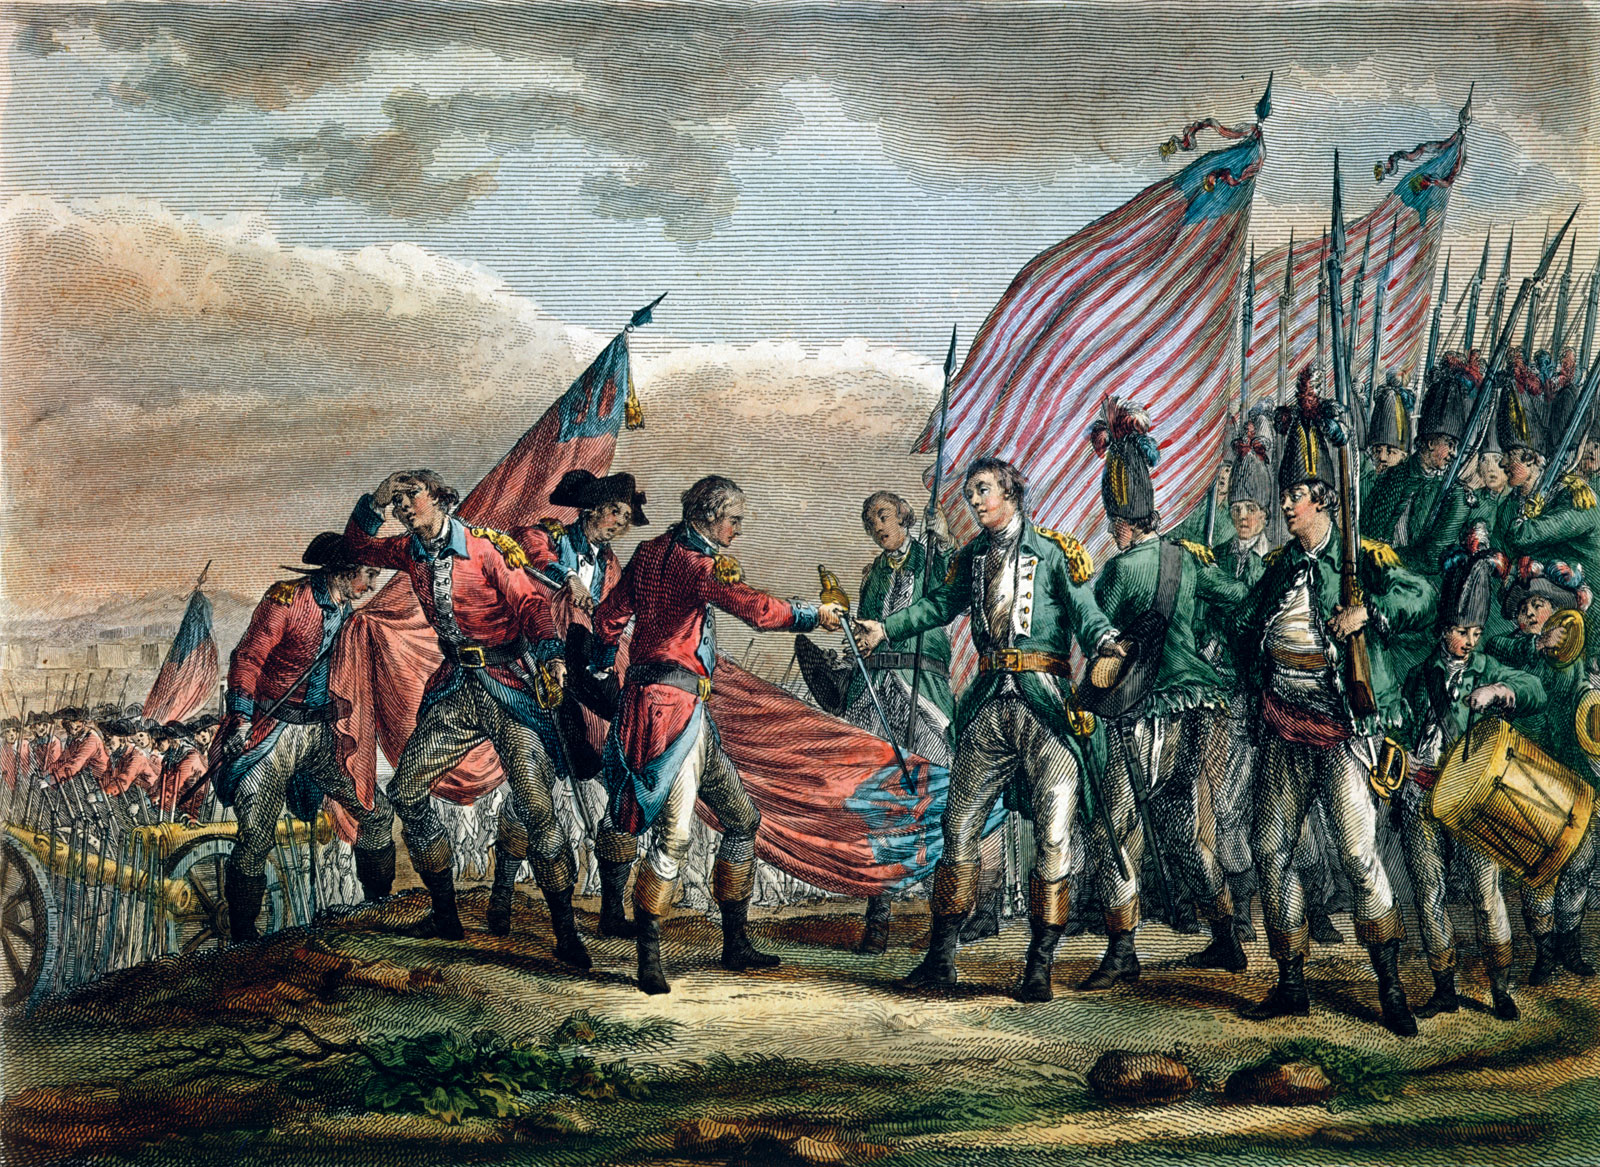 an analysis of revolutionary war battle of yorktown Yorktown video – 1:49 (tv-14) the siege at yorktown by 1780, the revolutionary war was raging in both the north and the south, and french forces had fully committed in the american effort to defeat the british.